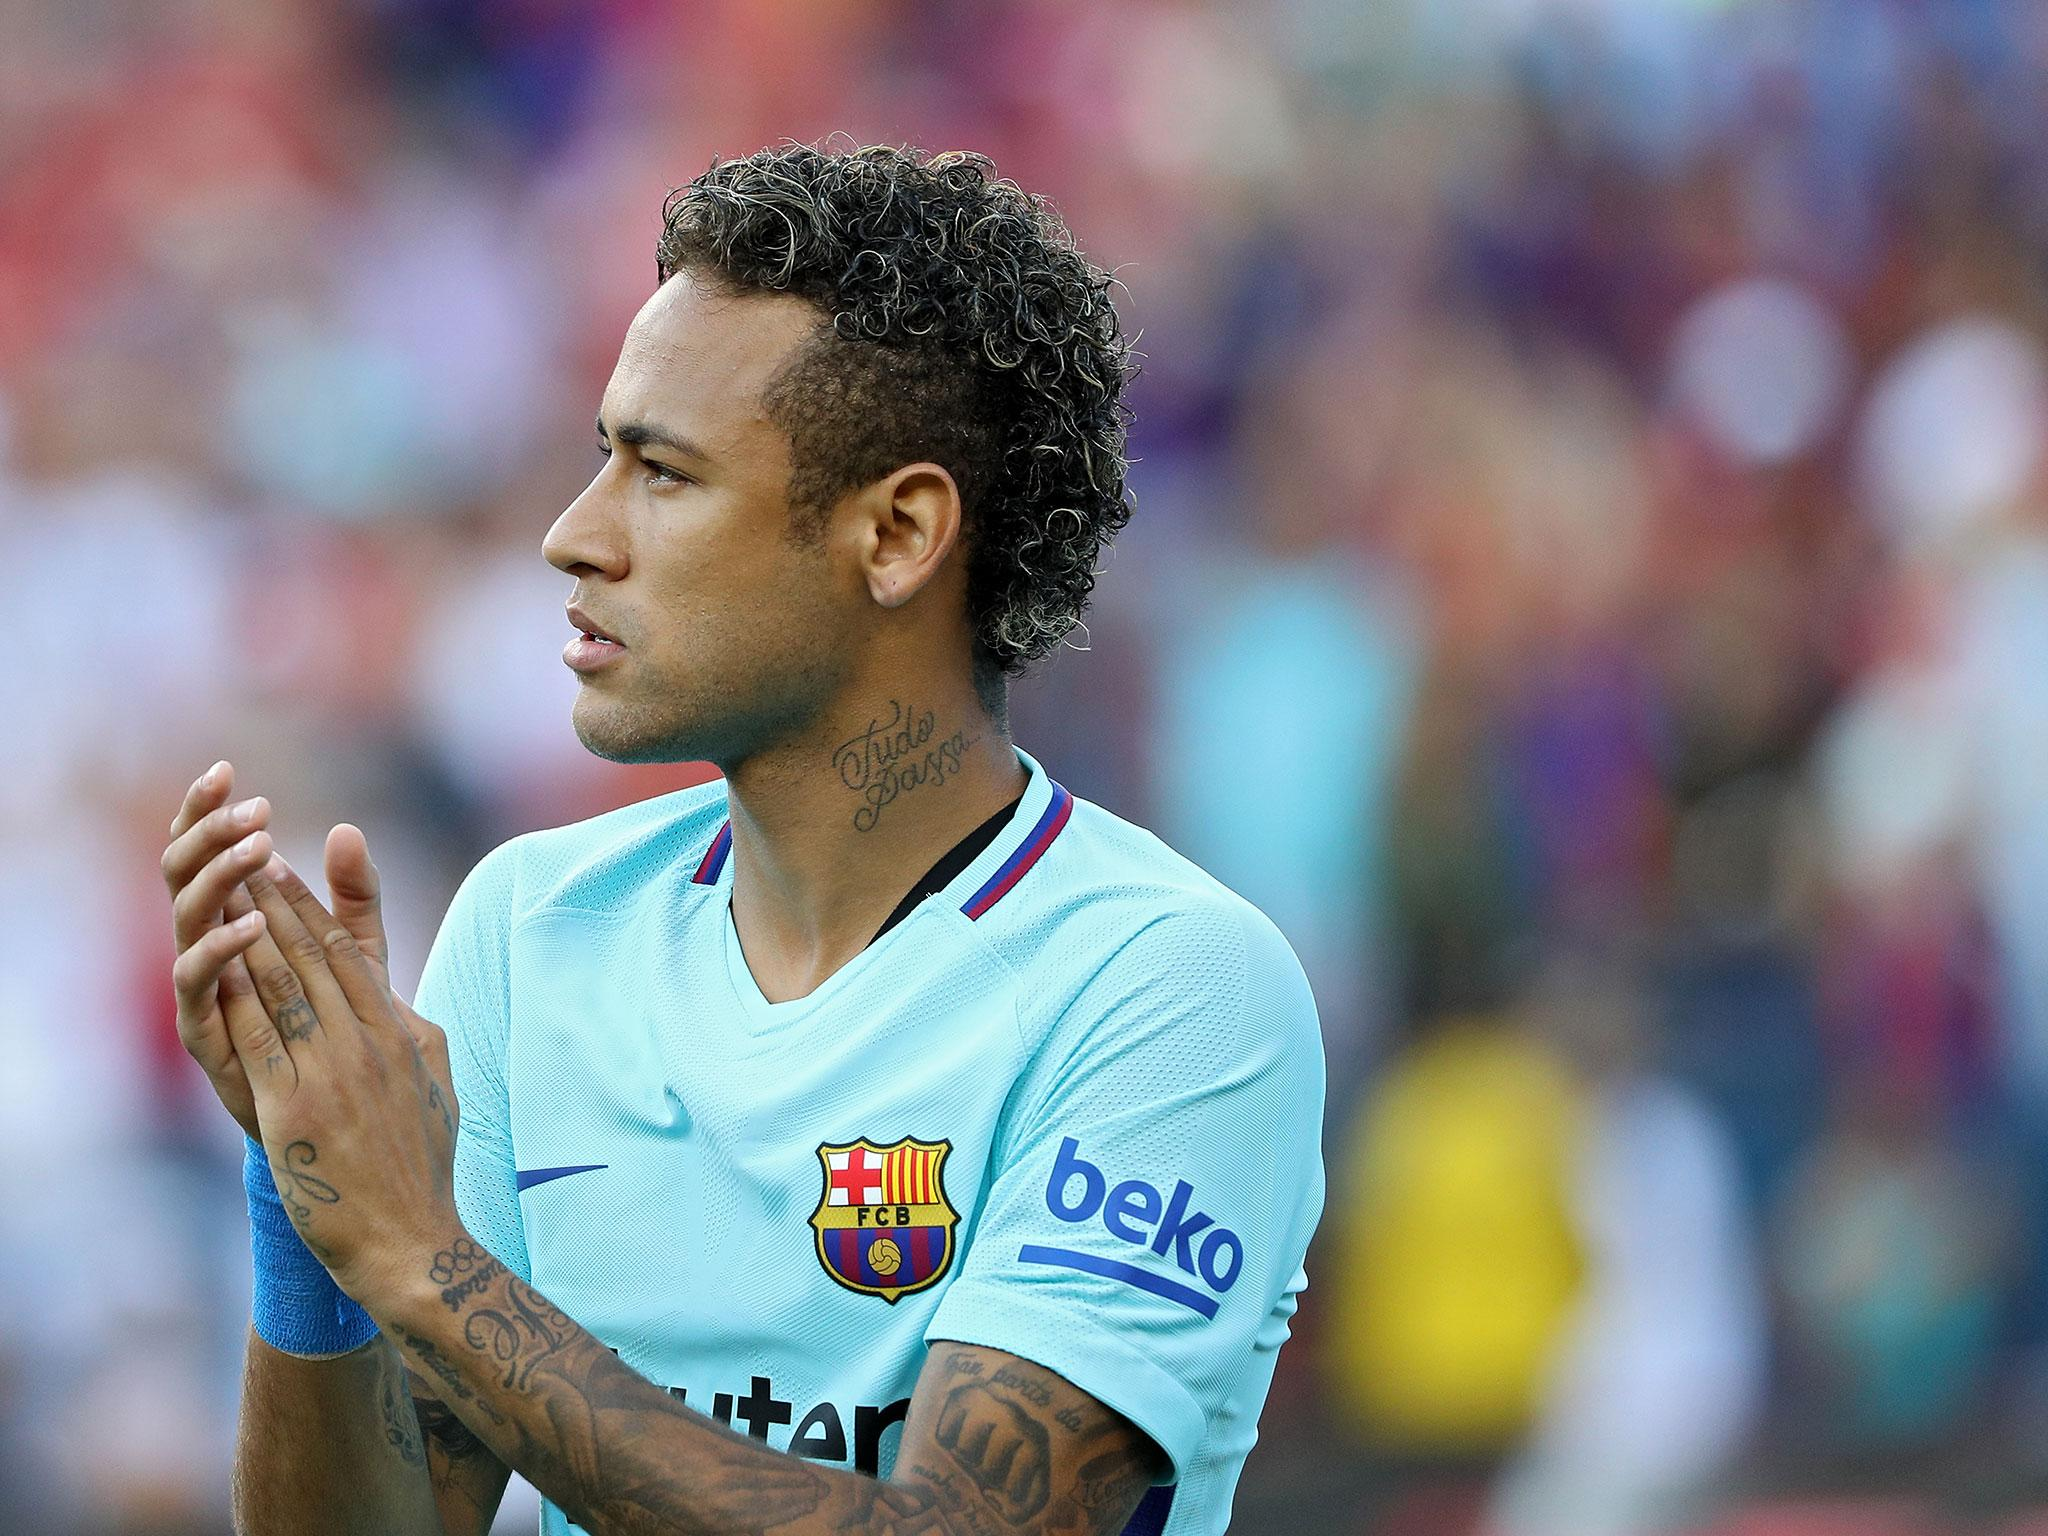 Barcelona confirm they have received £200m payment from PSG for